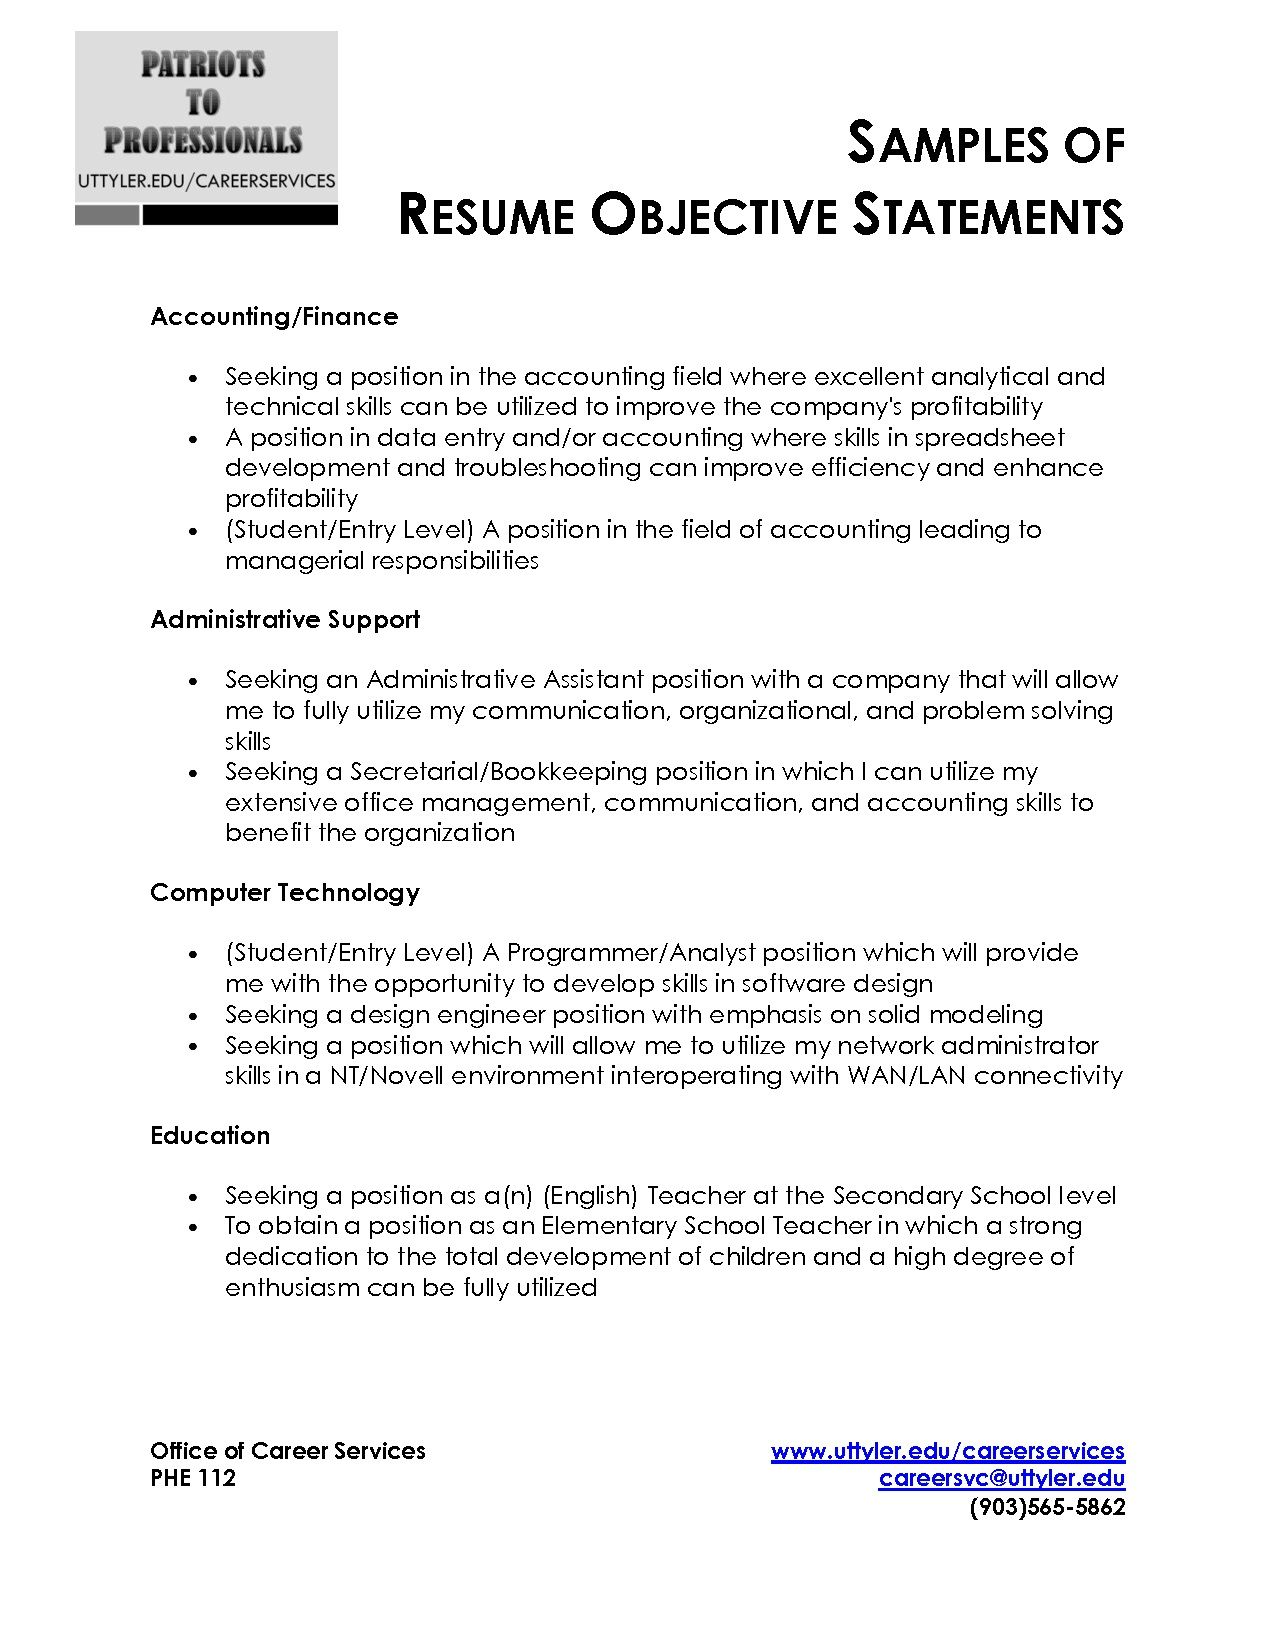 Nice Sample Resume Objective Statement   (adsbygoogle U003d Window.adsbygoogle || []) Pertaining To Objective Statement On Resume